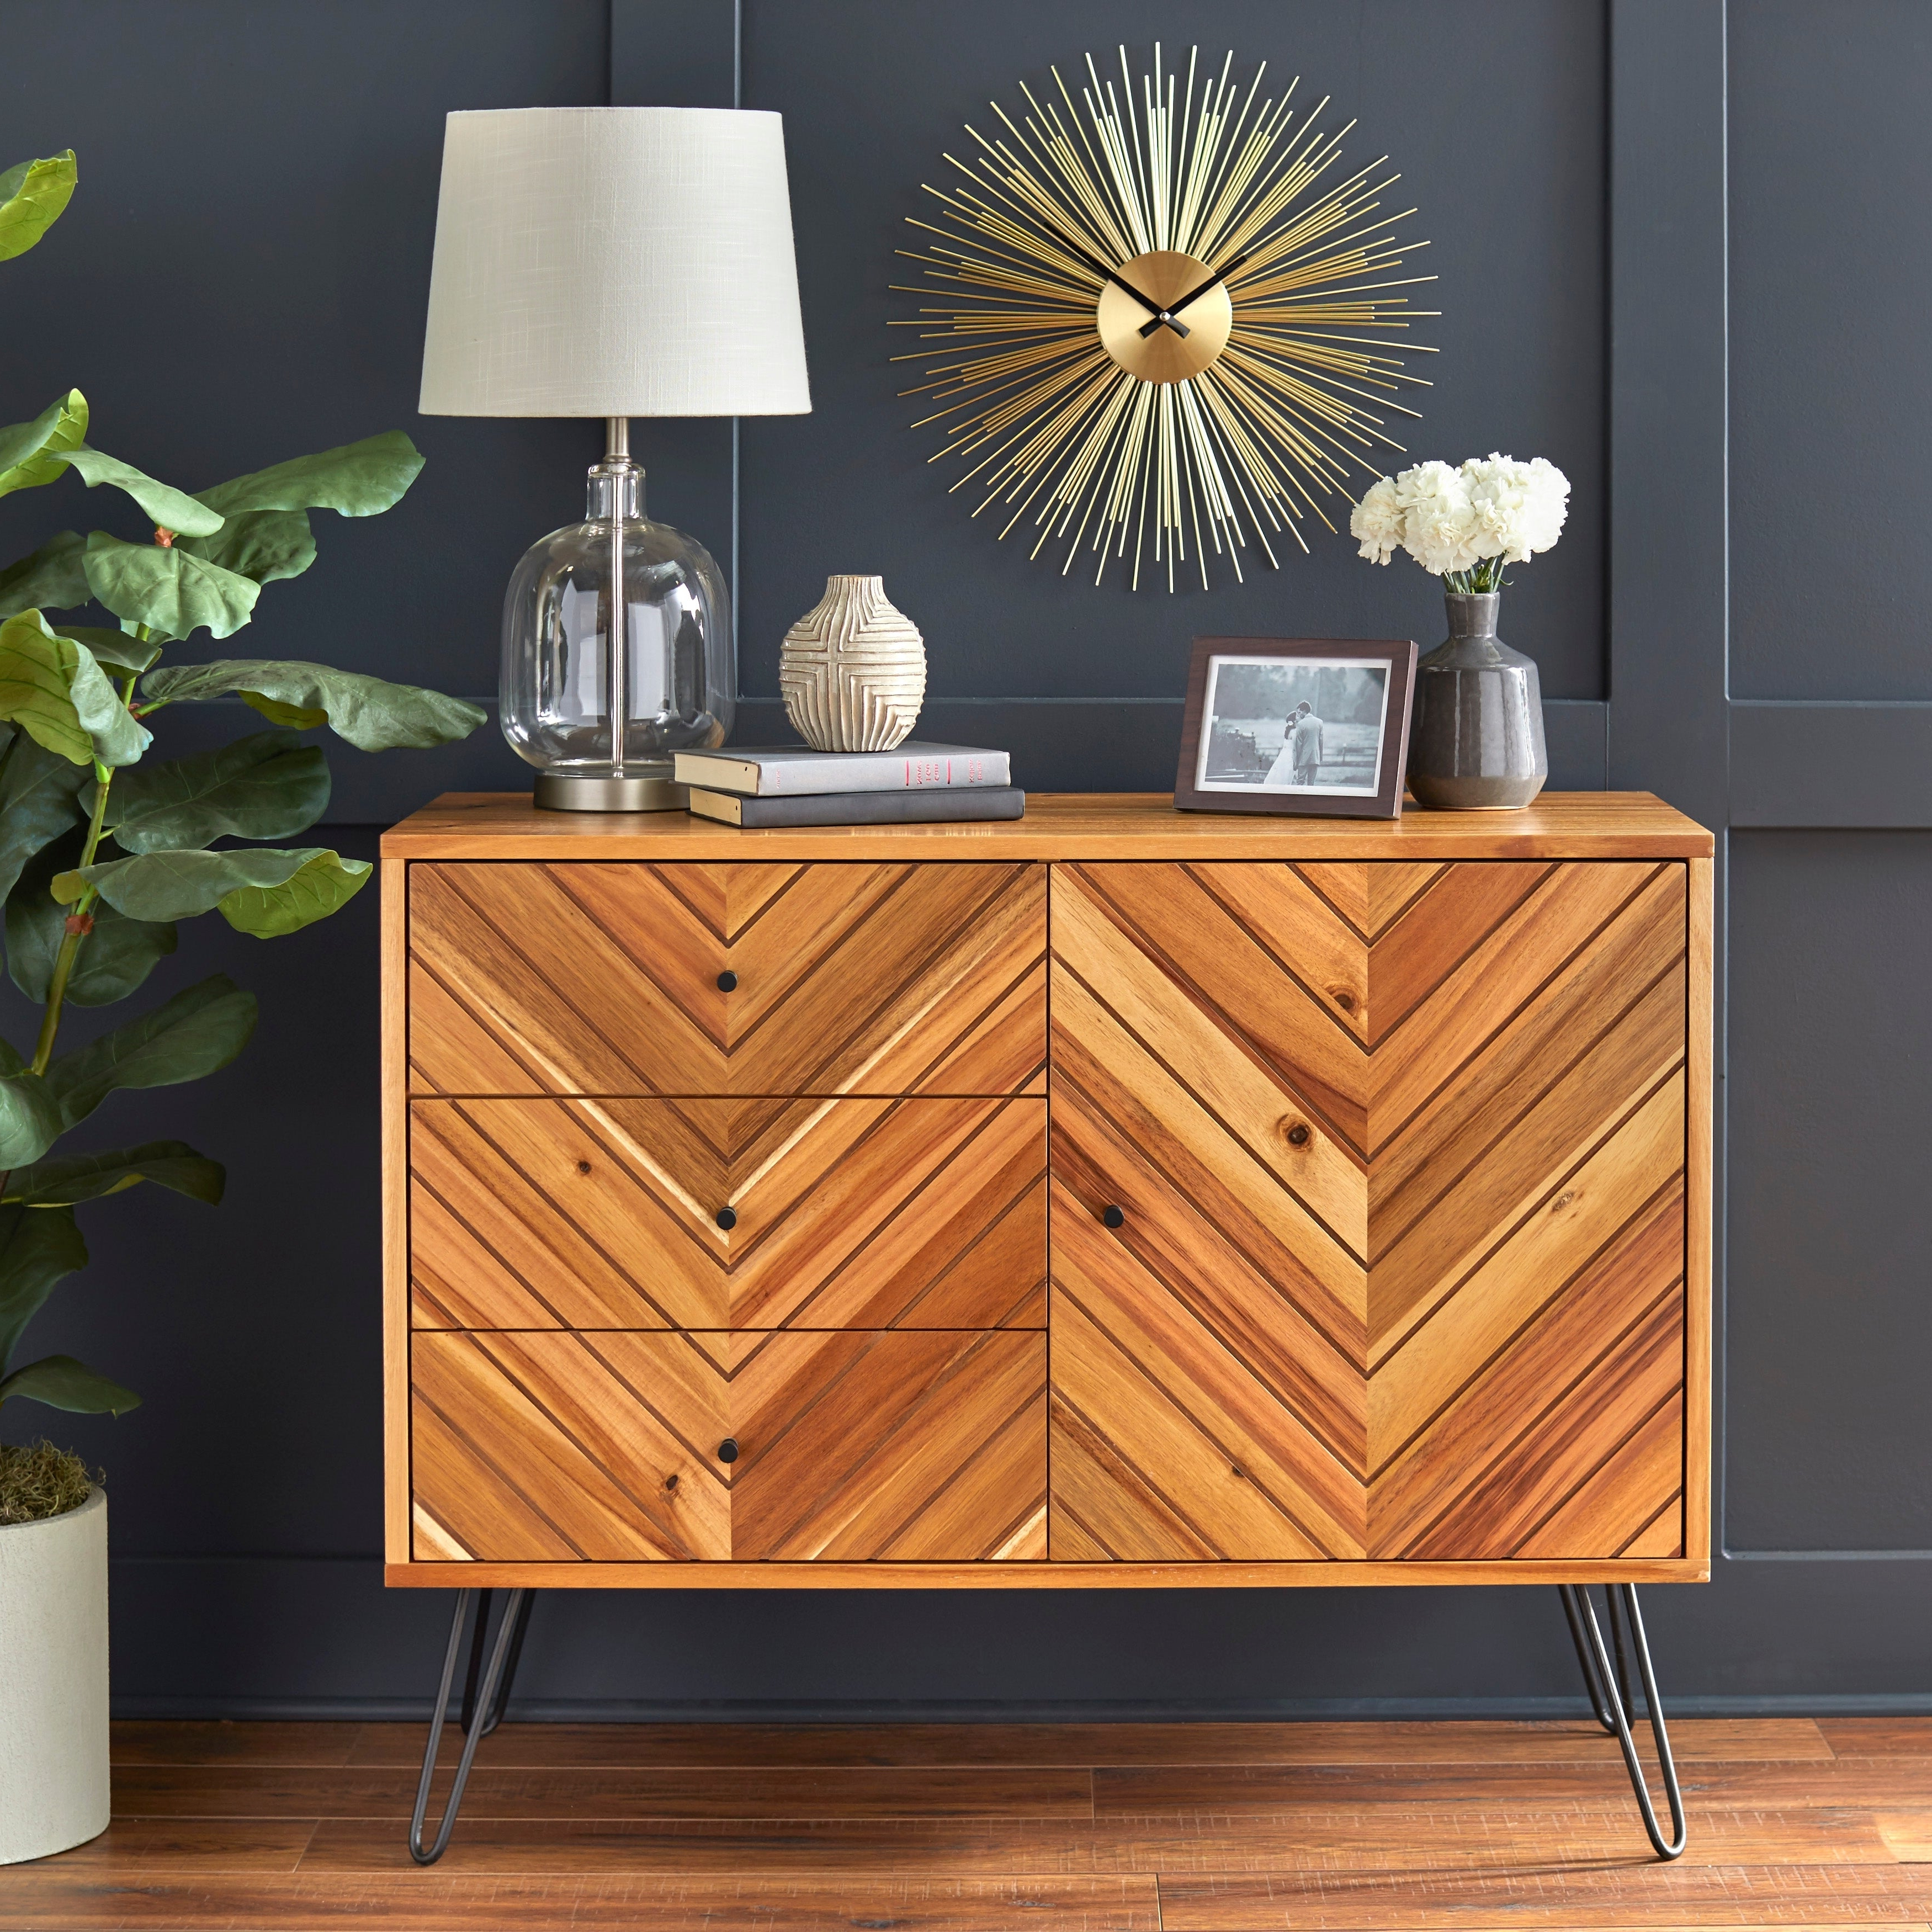 Buy Acacia Buffets, Sideboards & China Cabinets Online At Intended For Rustic Walnut Buffets (View 10 of 20)